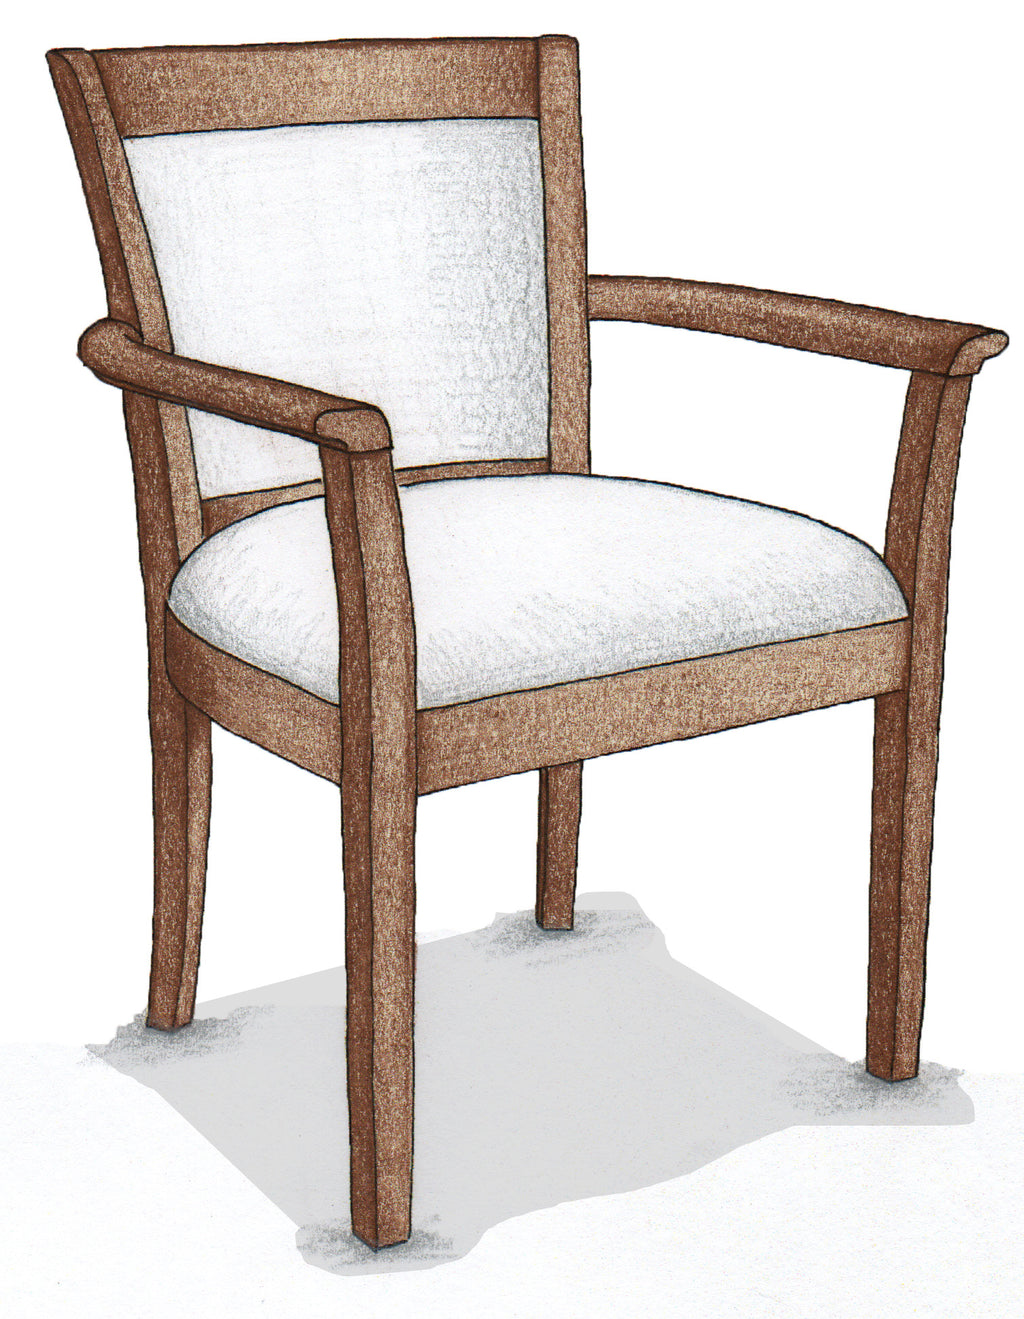 Open Arm Chair - FWeixlerCo